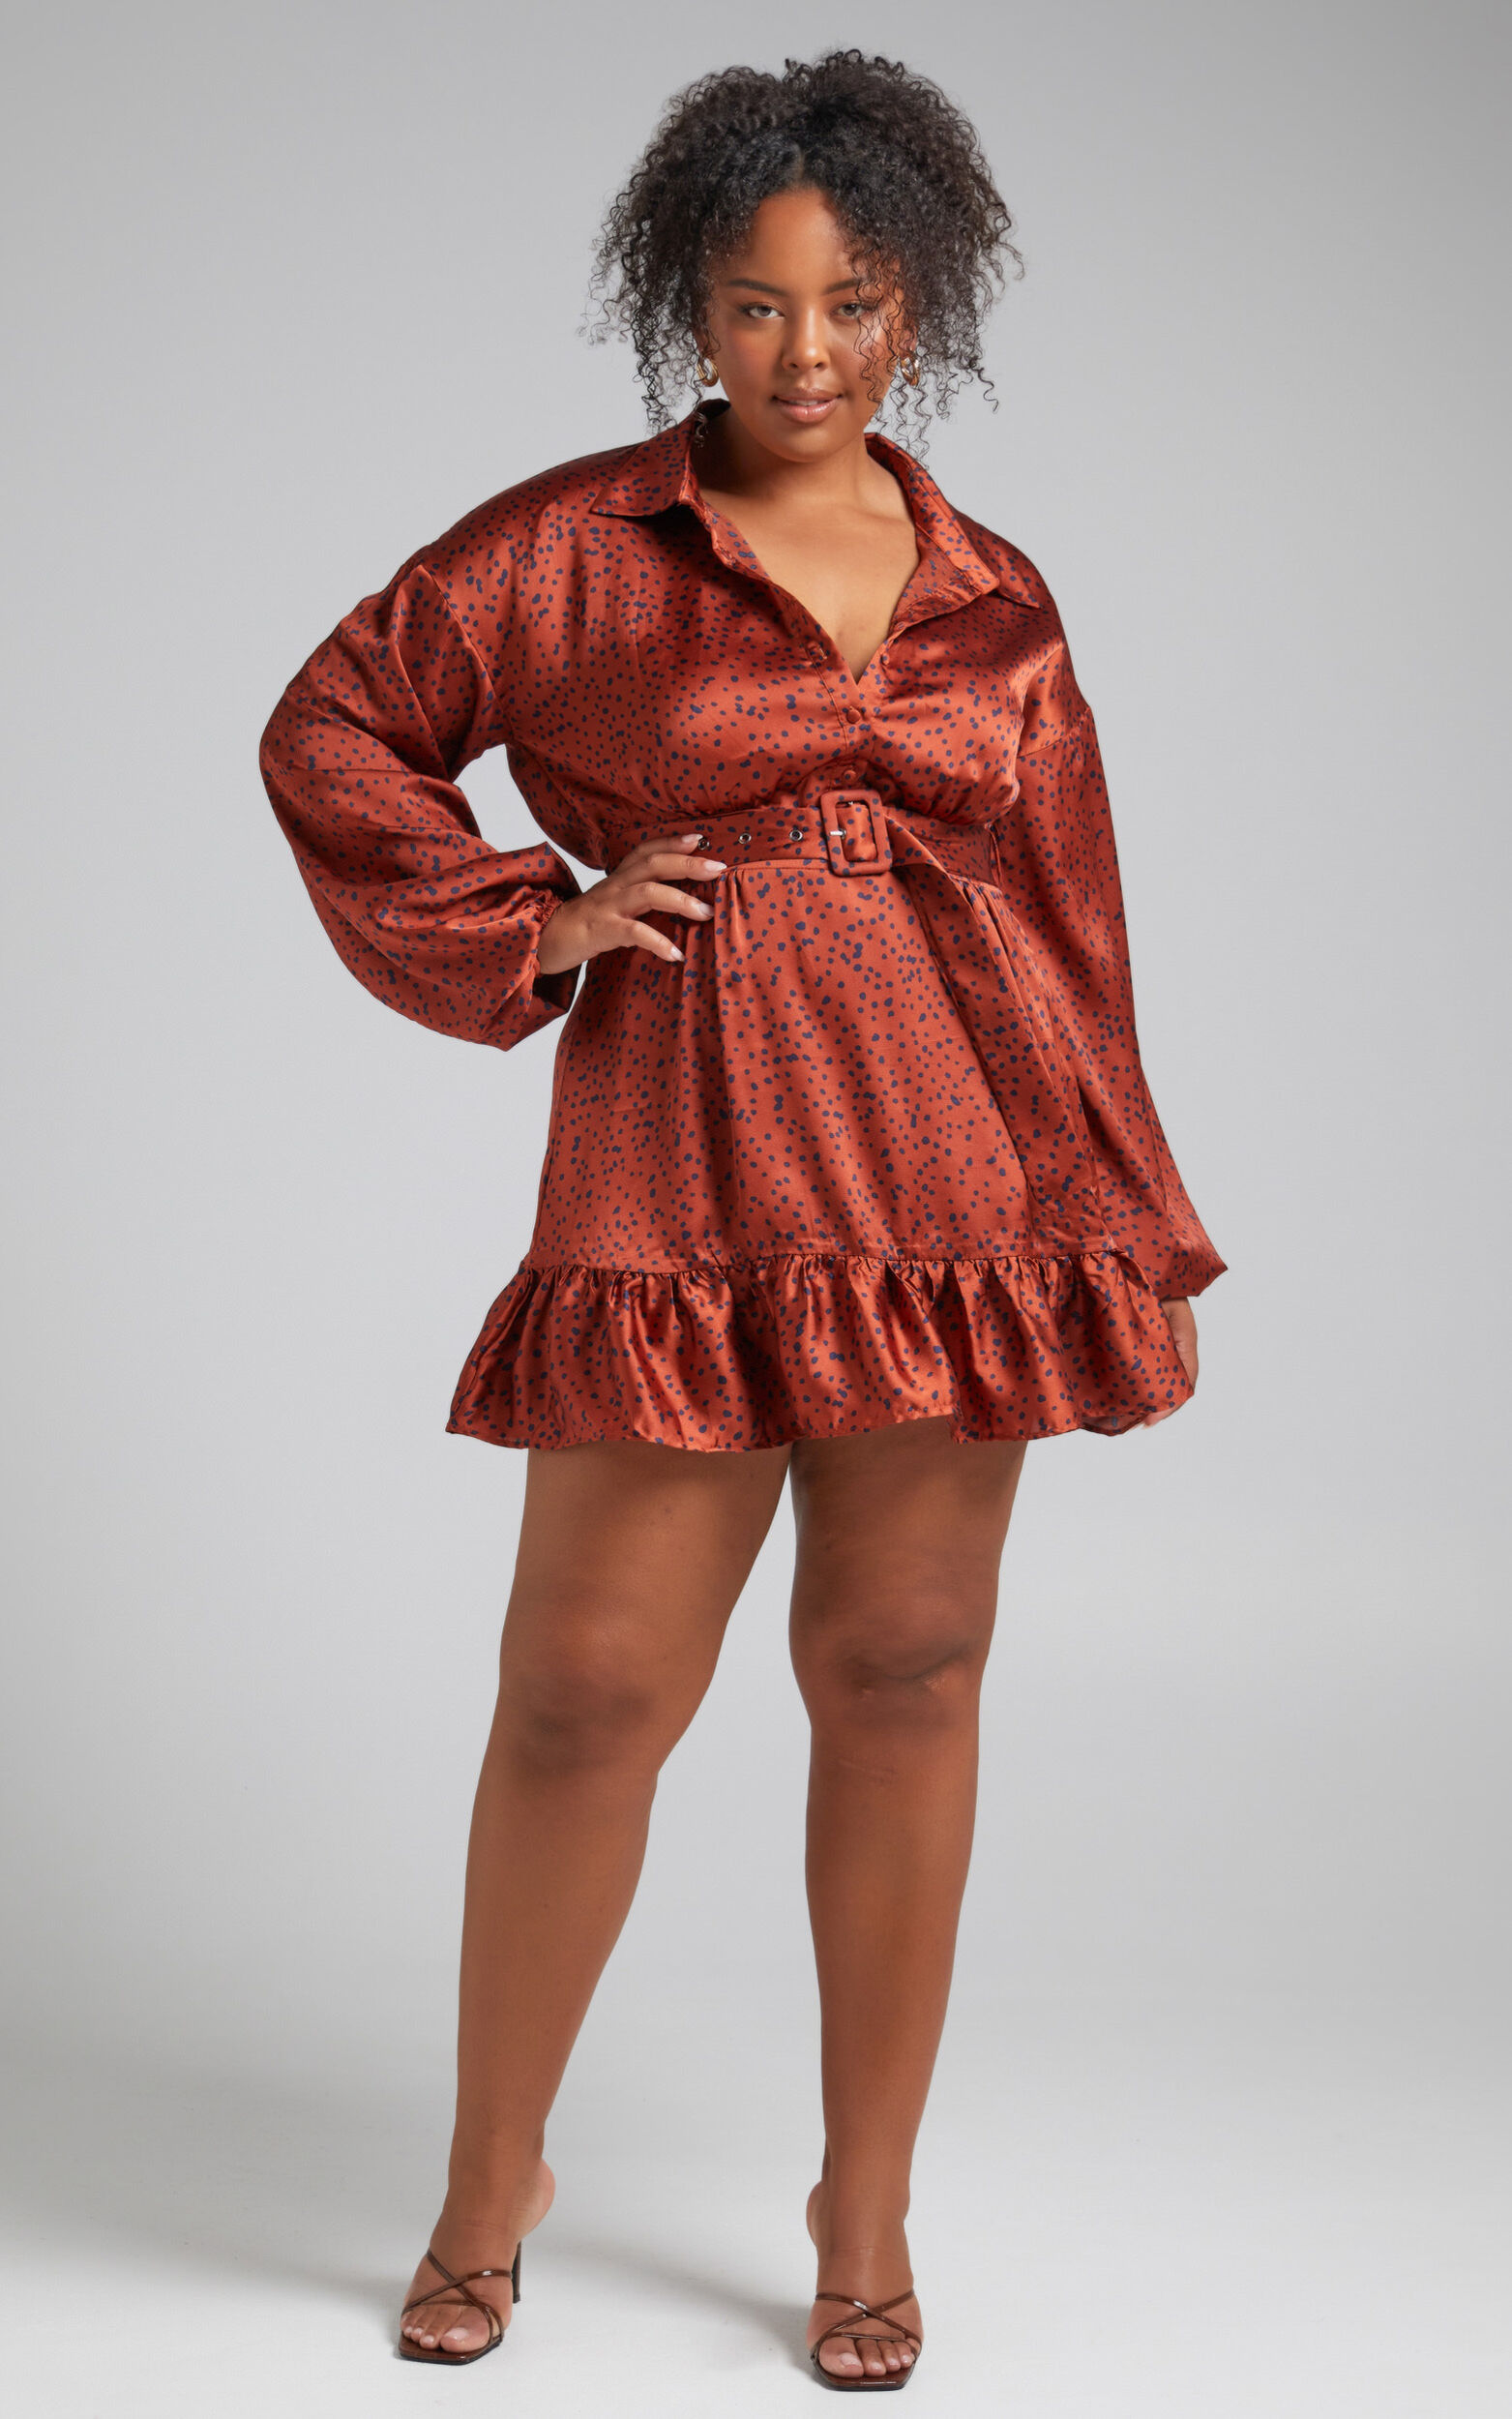 Cooma Belted Long Sleeve Collared Mini Dress in Copper Spot - 04, GLD1, super-hi-res image number null